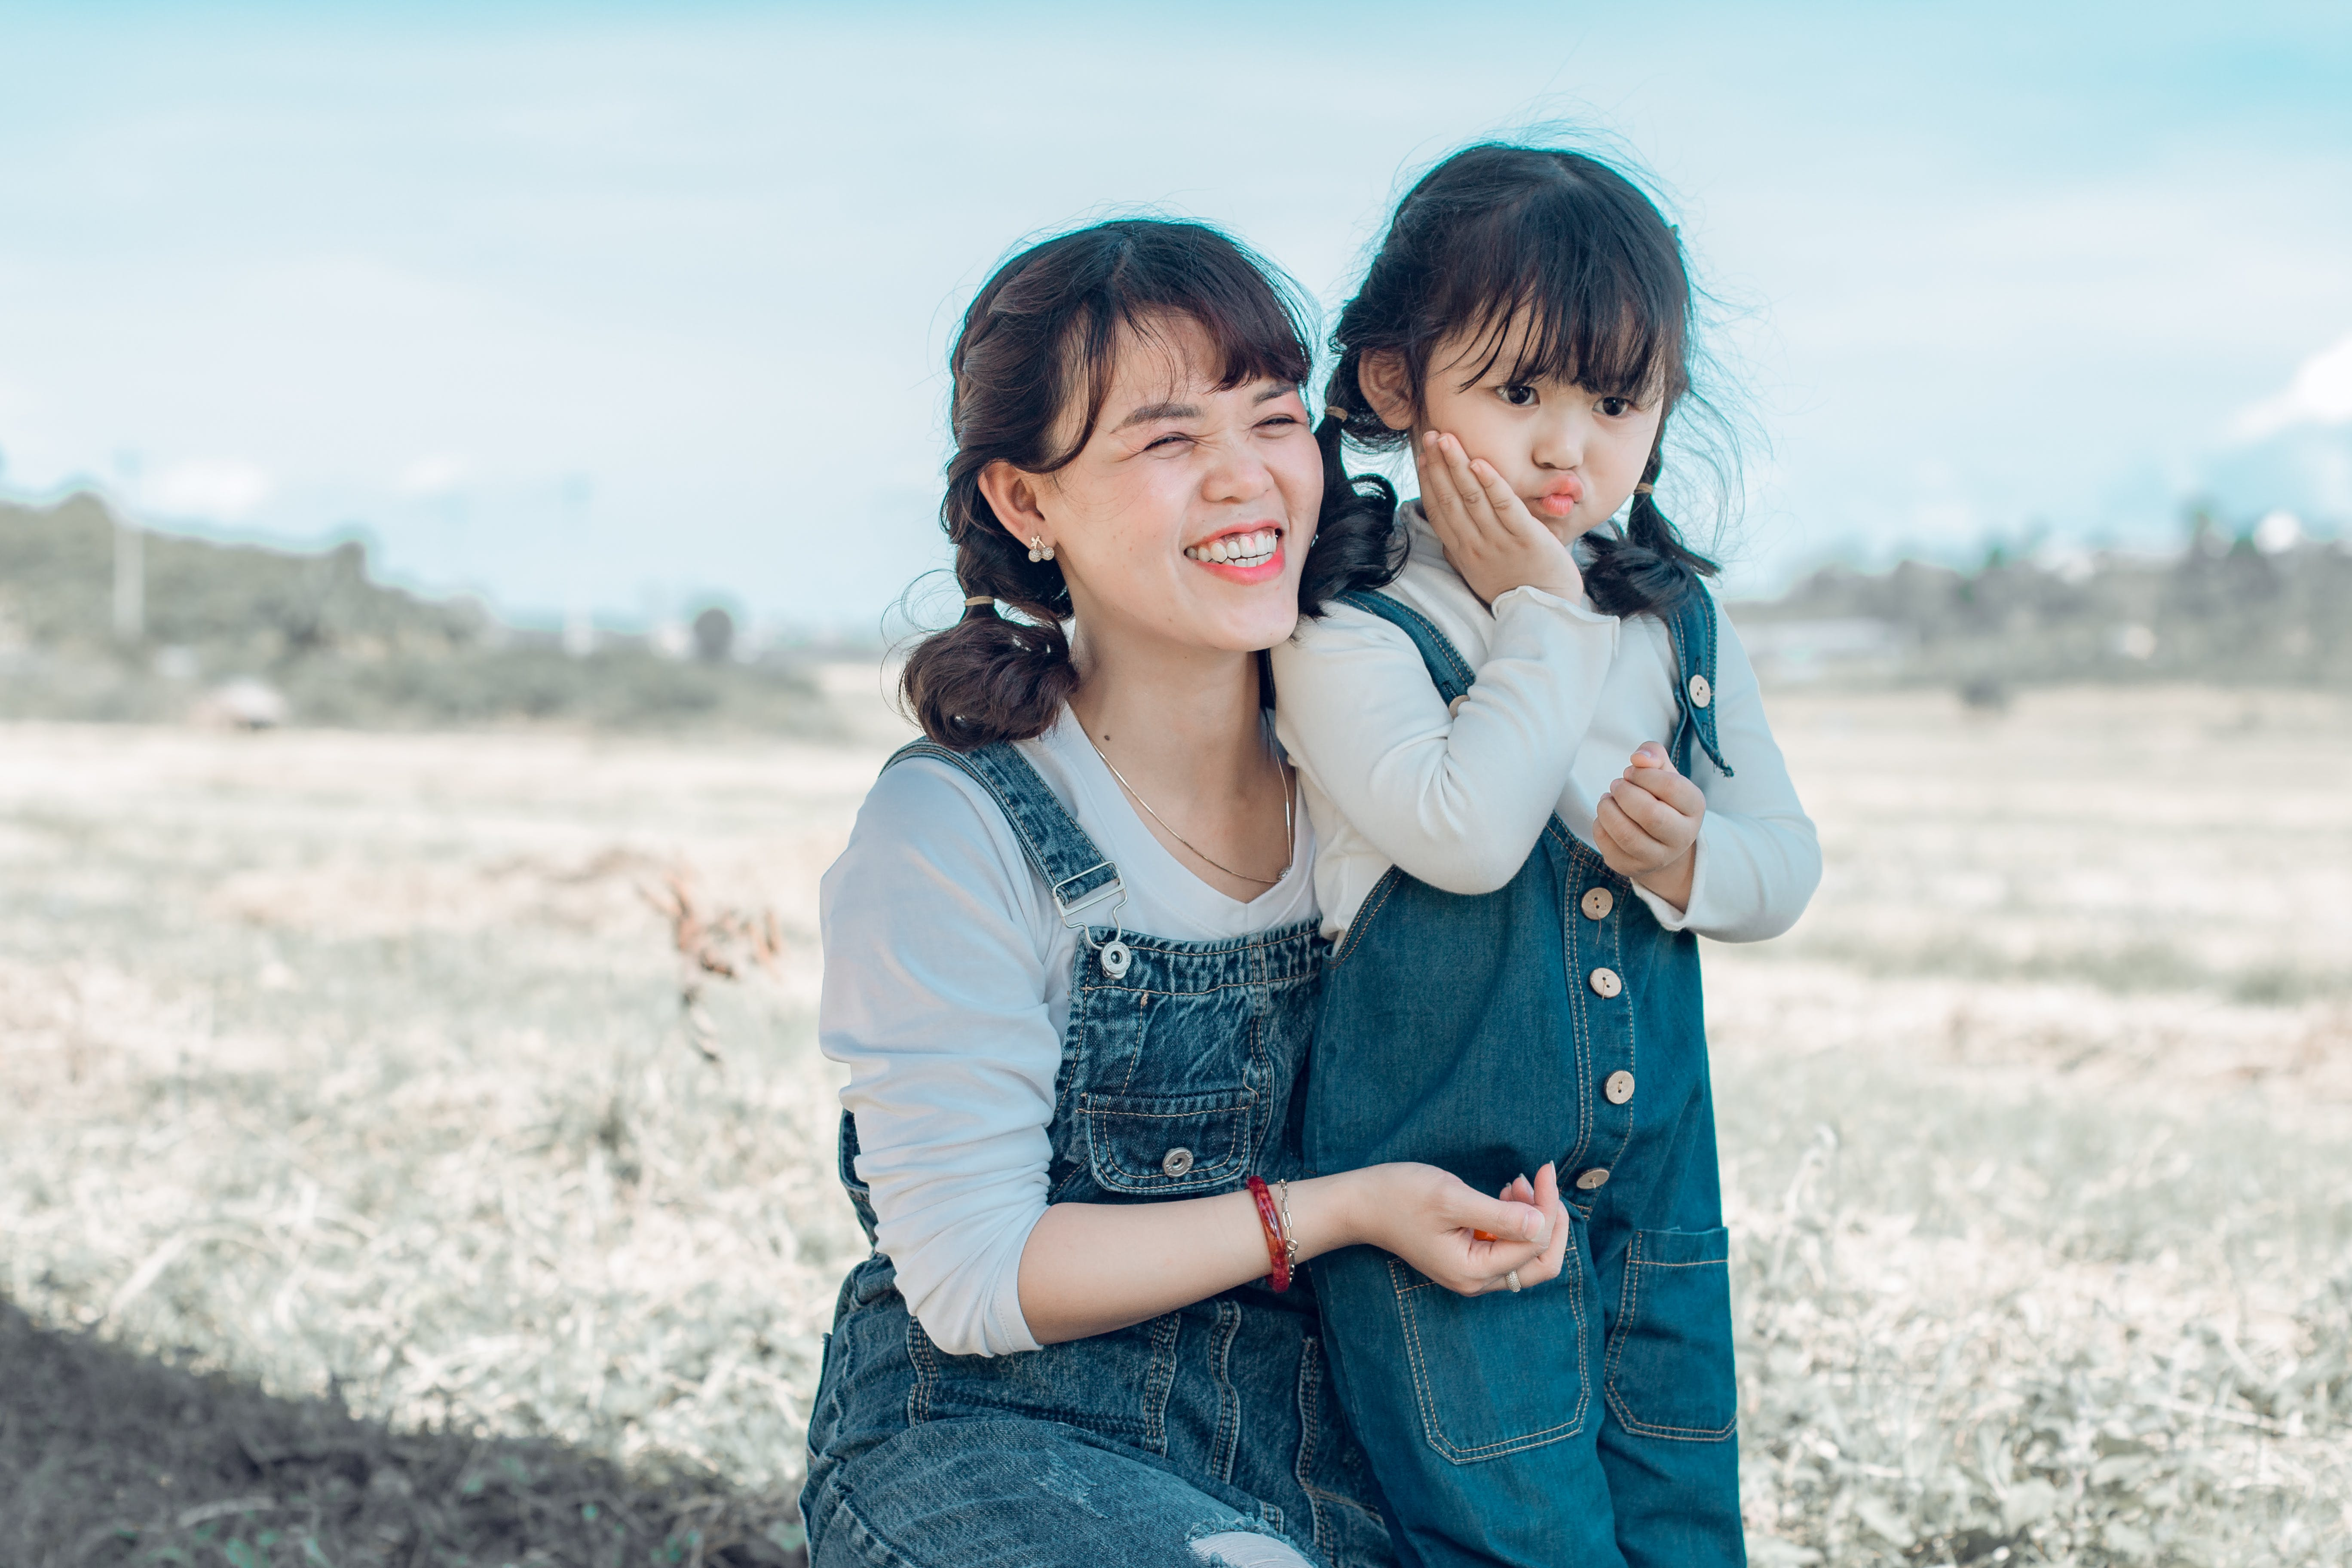 Woman Hugging Girl While Sitting on Grass Field